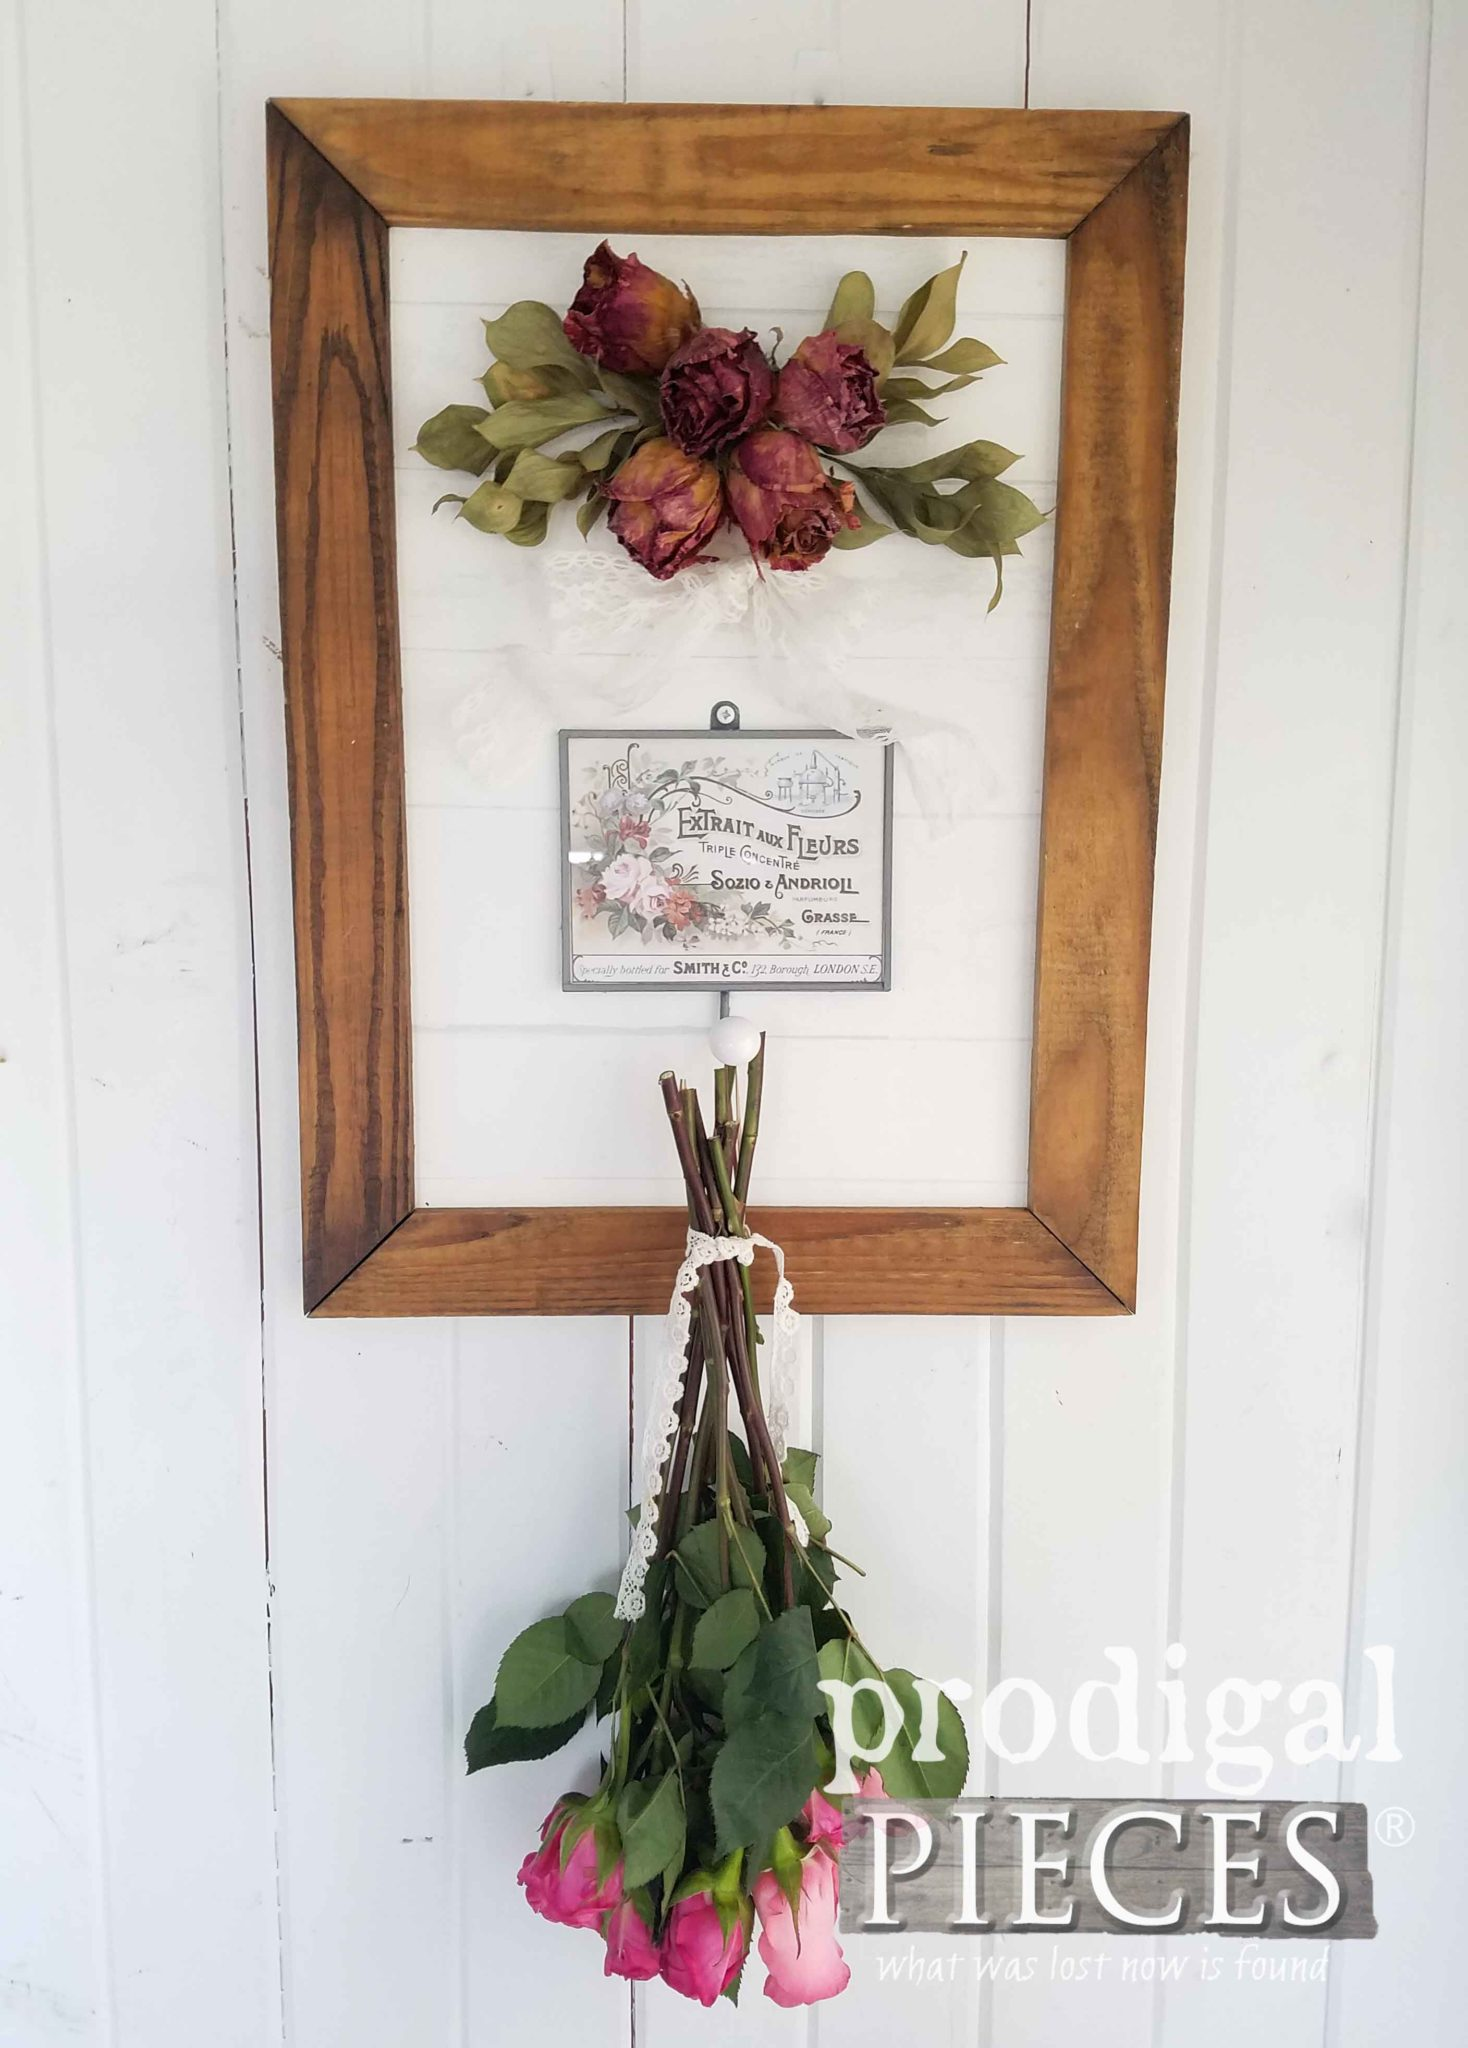 Rustic Chic Framed Roses with French Perfume Label and Hook | by Larissa at Prodigal Pieces | prodigalpieces.com